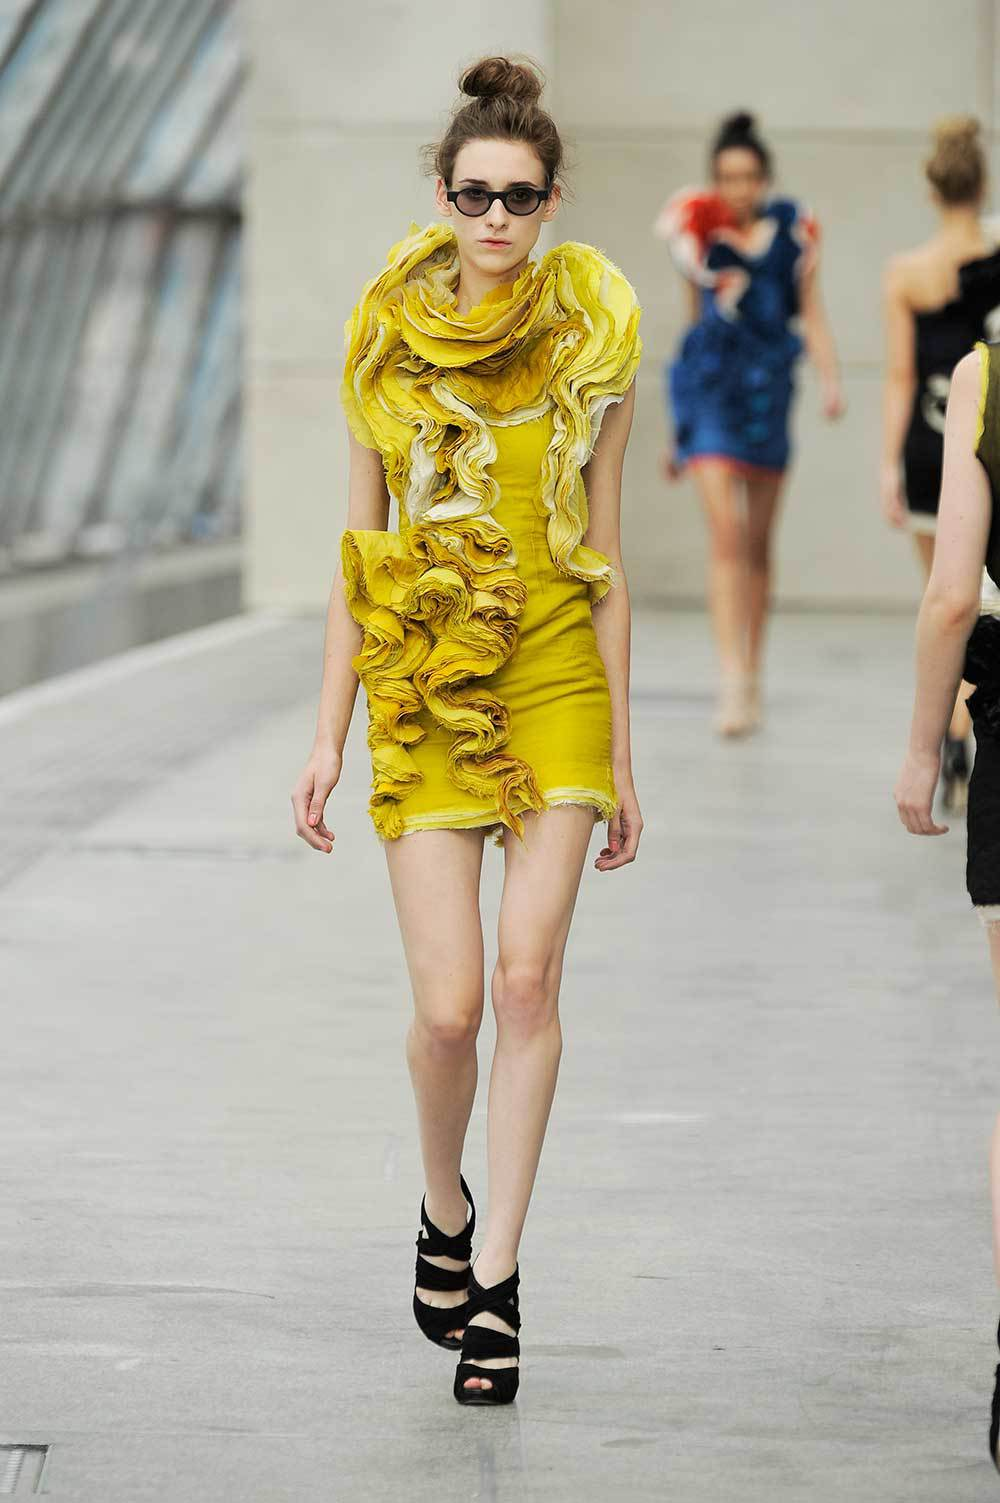 Felicity-Brown-SS11-10-Mustard-Ruffle-Dress.jpg